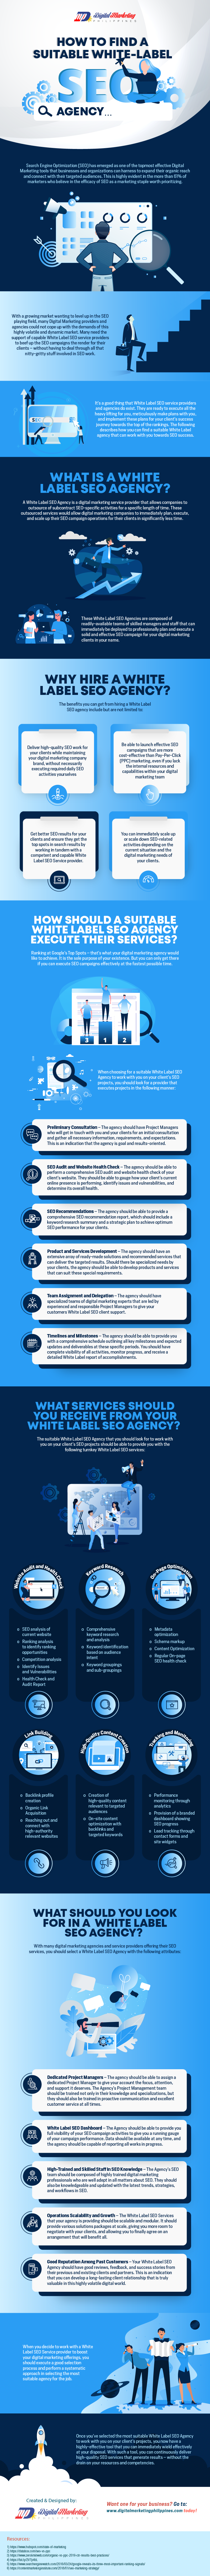 How to Find a Suitable White-Label SEO Agency [Infographic]